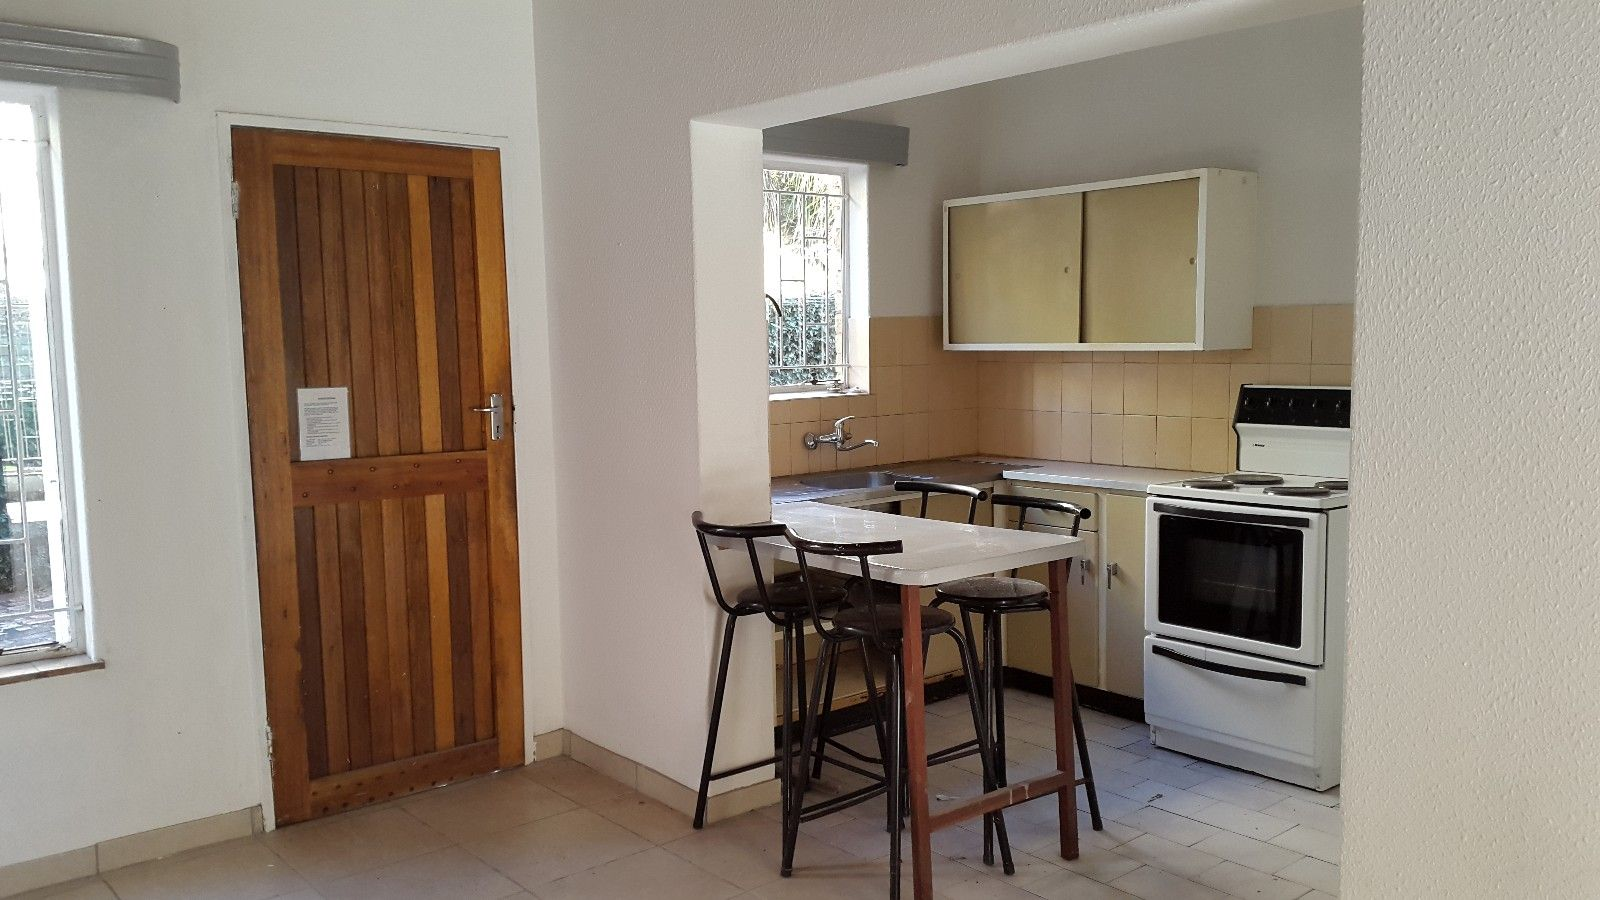 Apartment in Central - Macoriena__A13_033.jpg